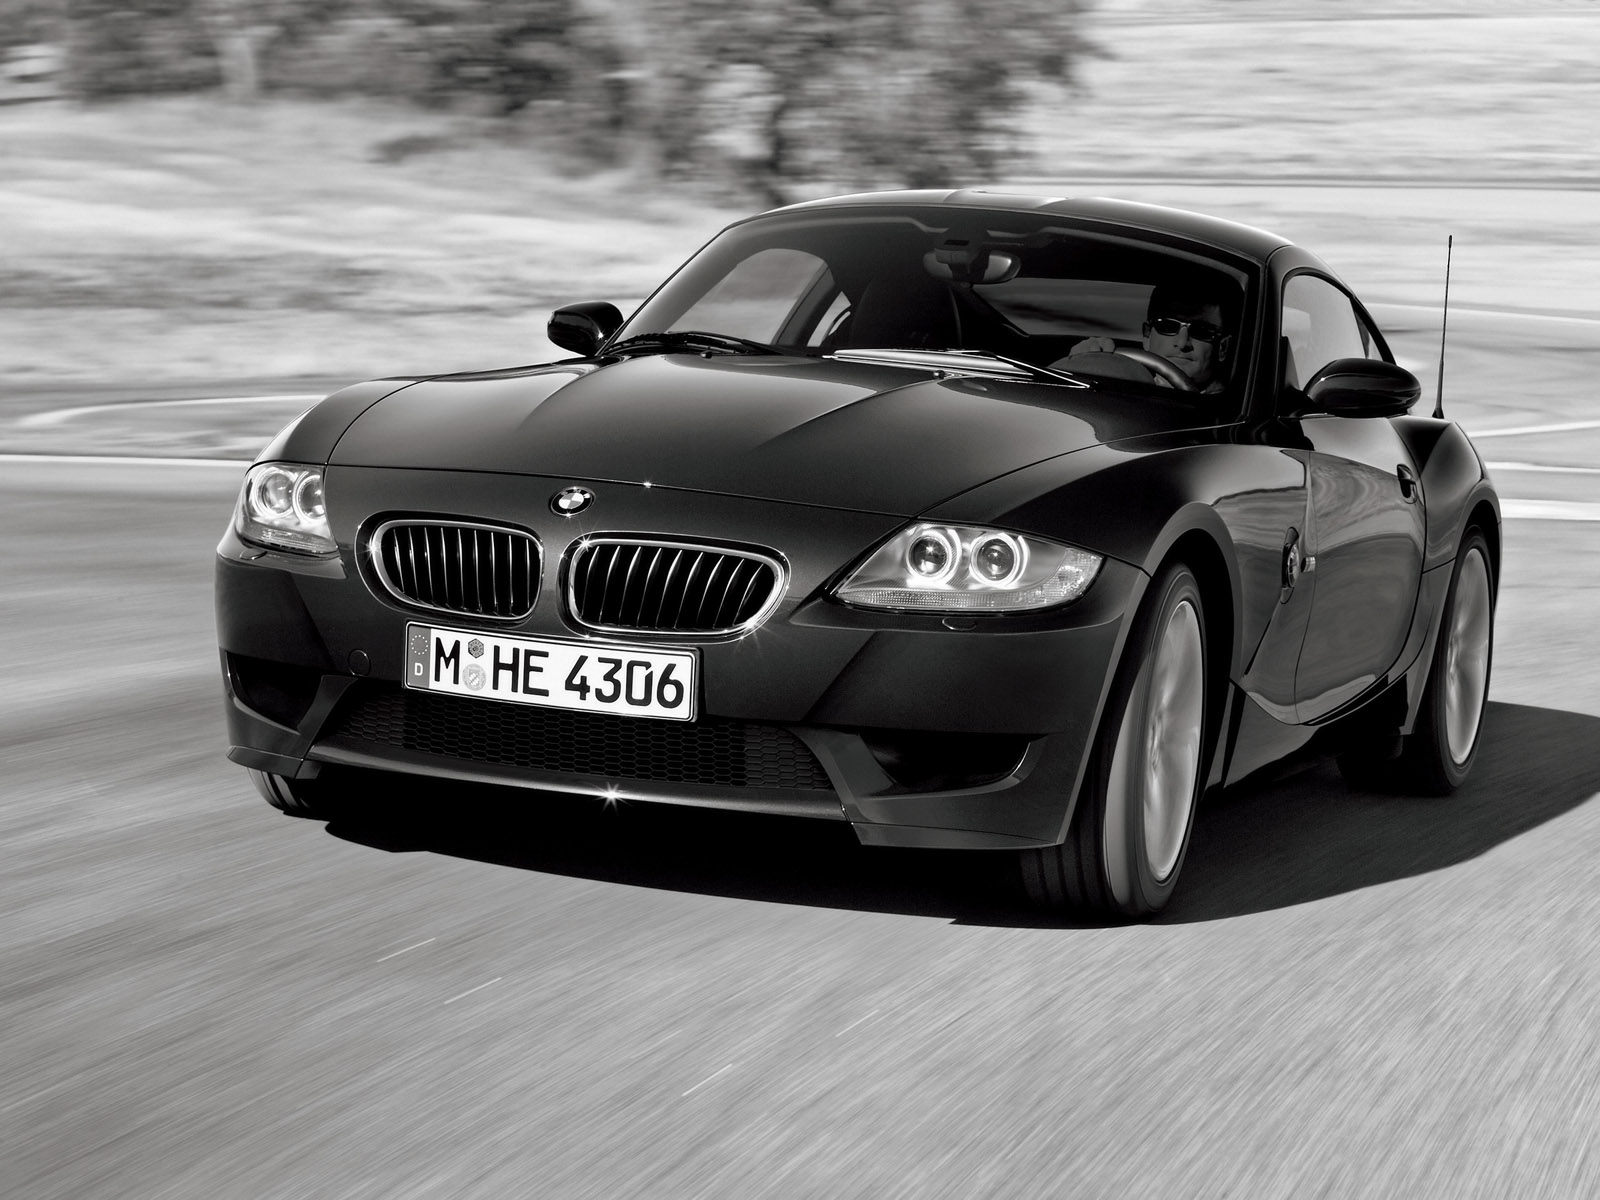 Fast Auto Black Bmw Car Wallpaper Photo